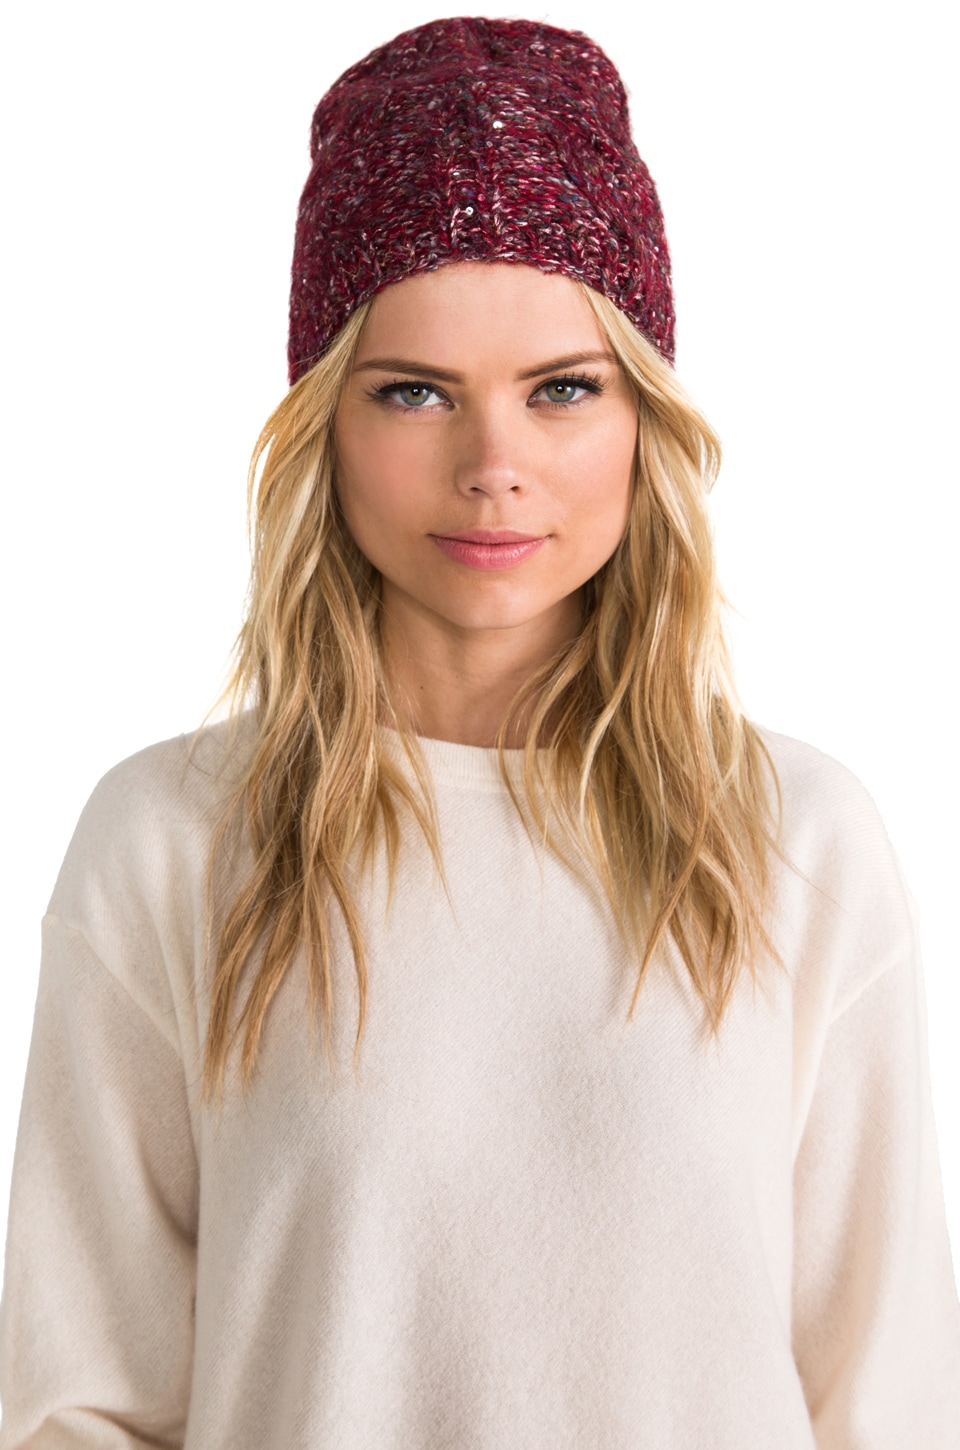 Genie by Eugenia Kim Kate Beanie in Burgundy/Multi